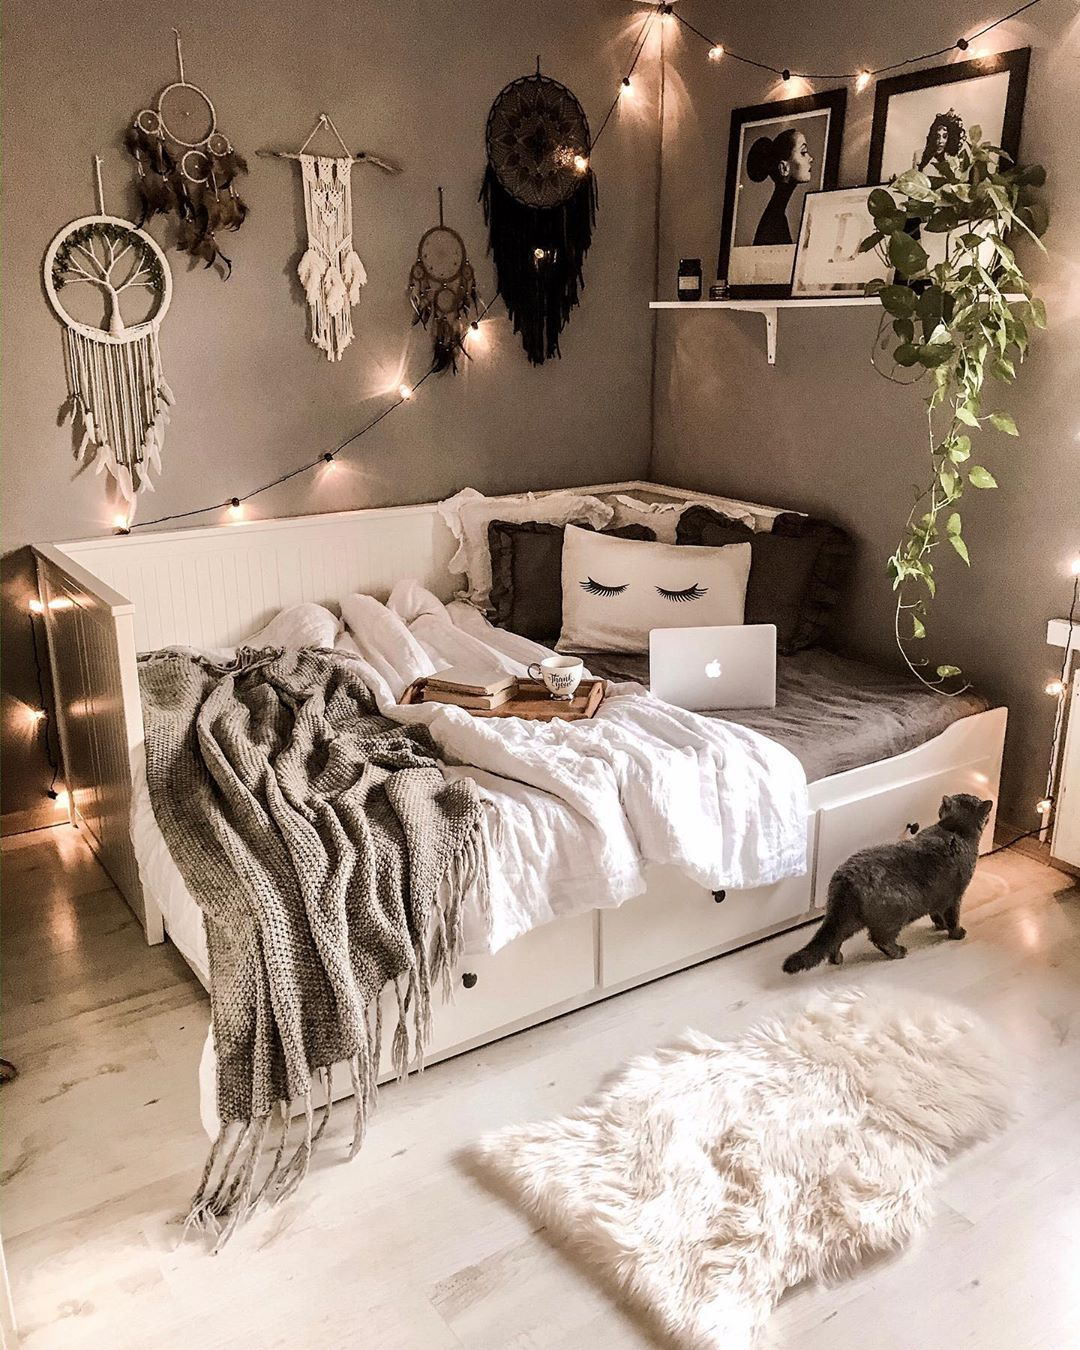 39 Tips For Decorating A Bedroom